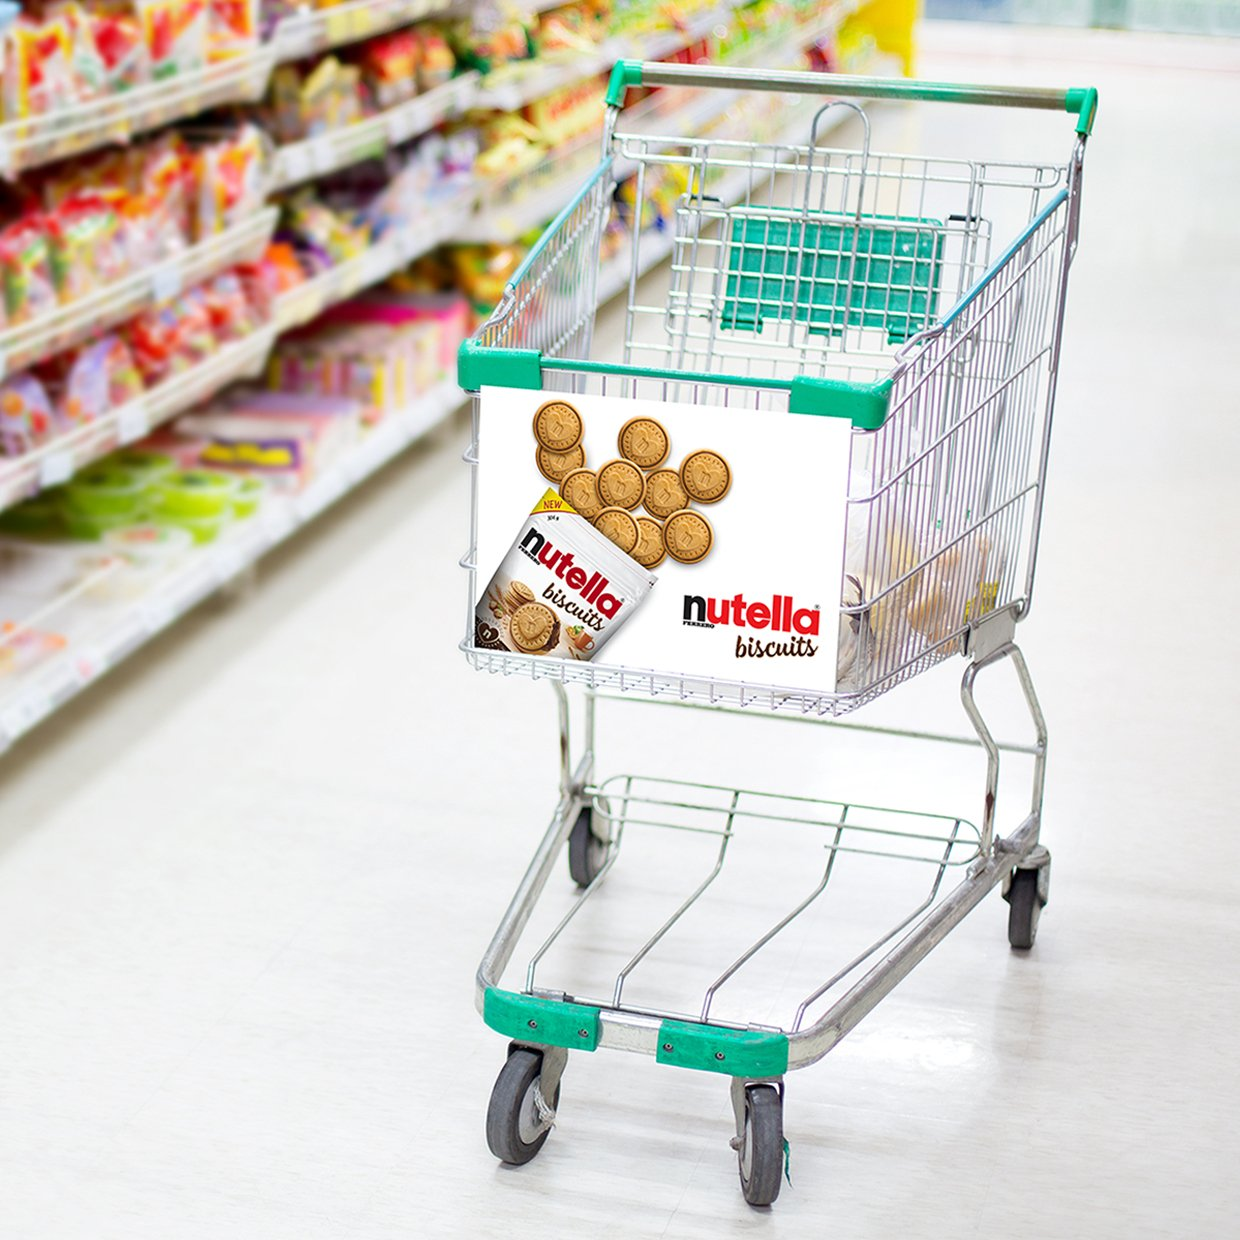 pop-nutella-biscuits-the-bear